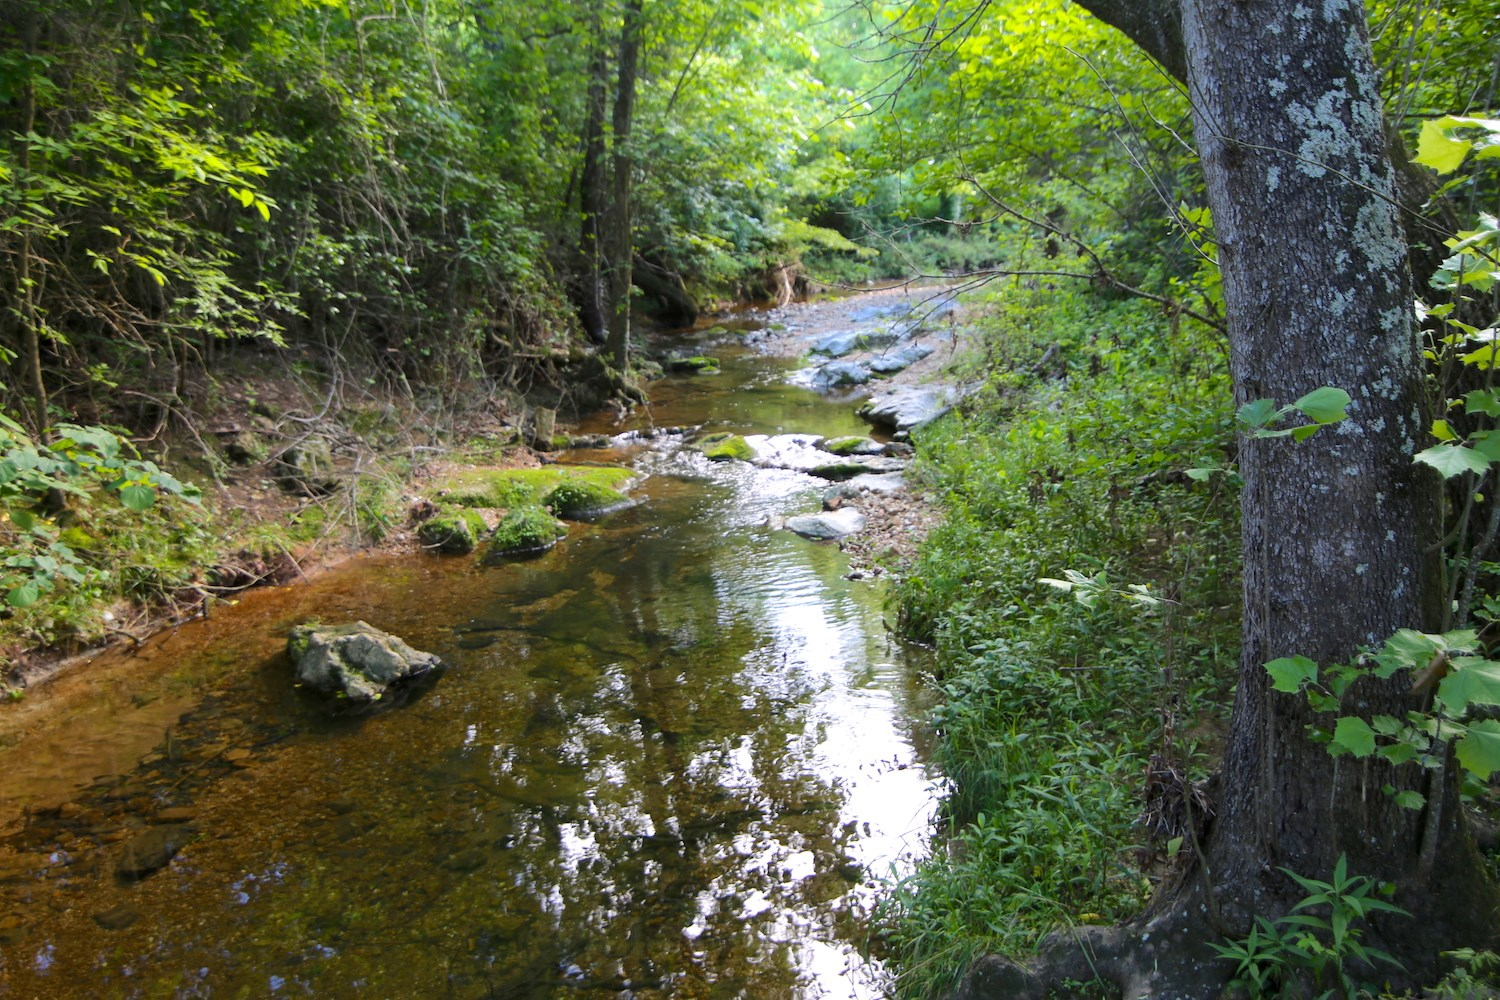 Hunting Property For Sale in the Ozarks